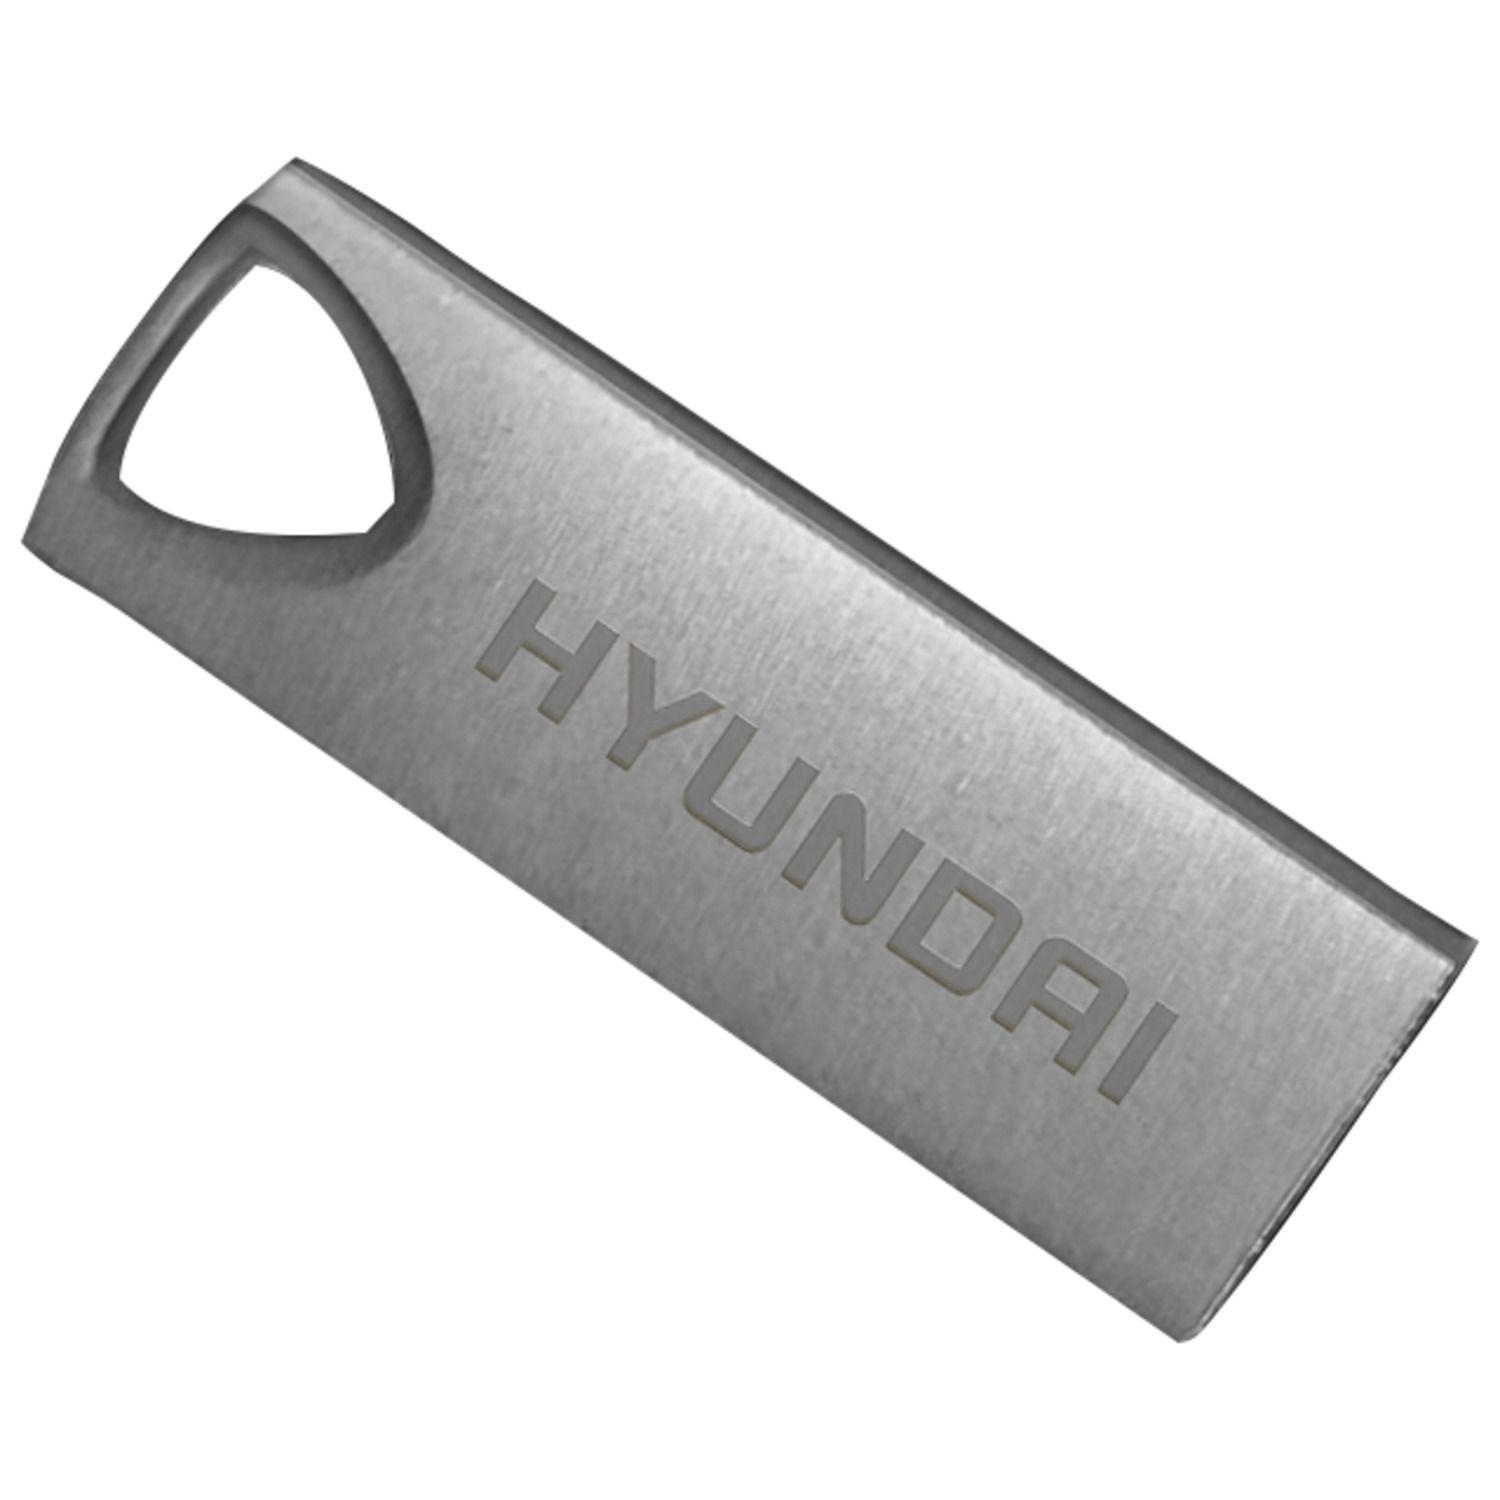 Hyundai Technology U2BK/32GASG 32GB Bravo Deluxe USB 2.0 Flash Drive (Space Gray)